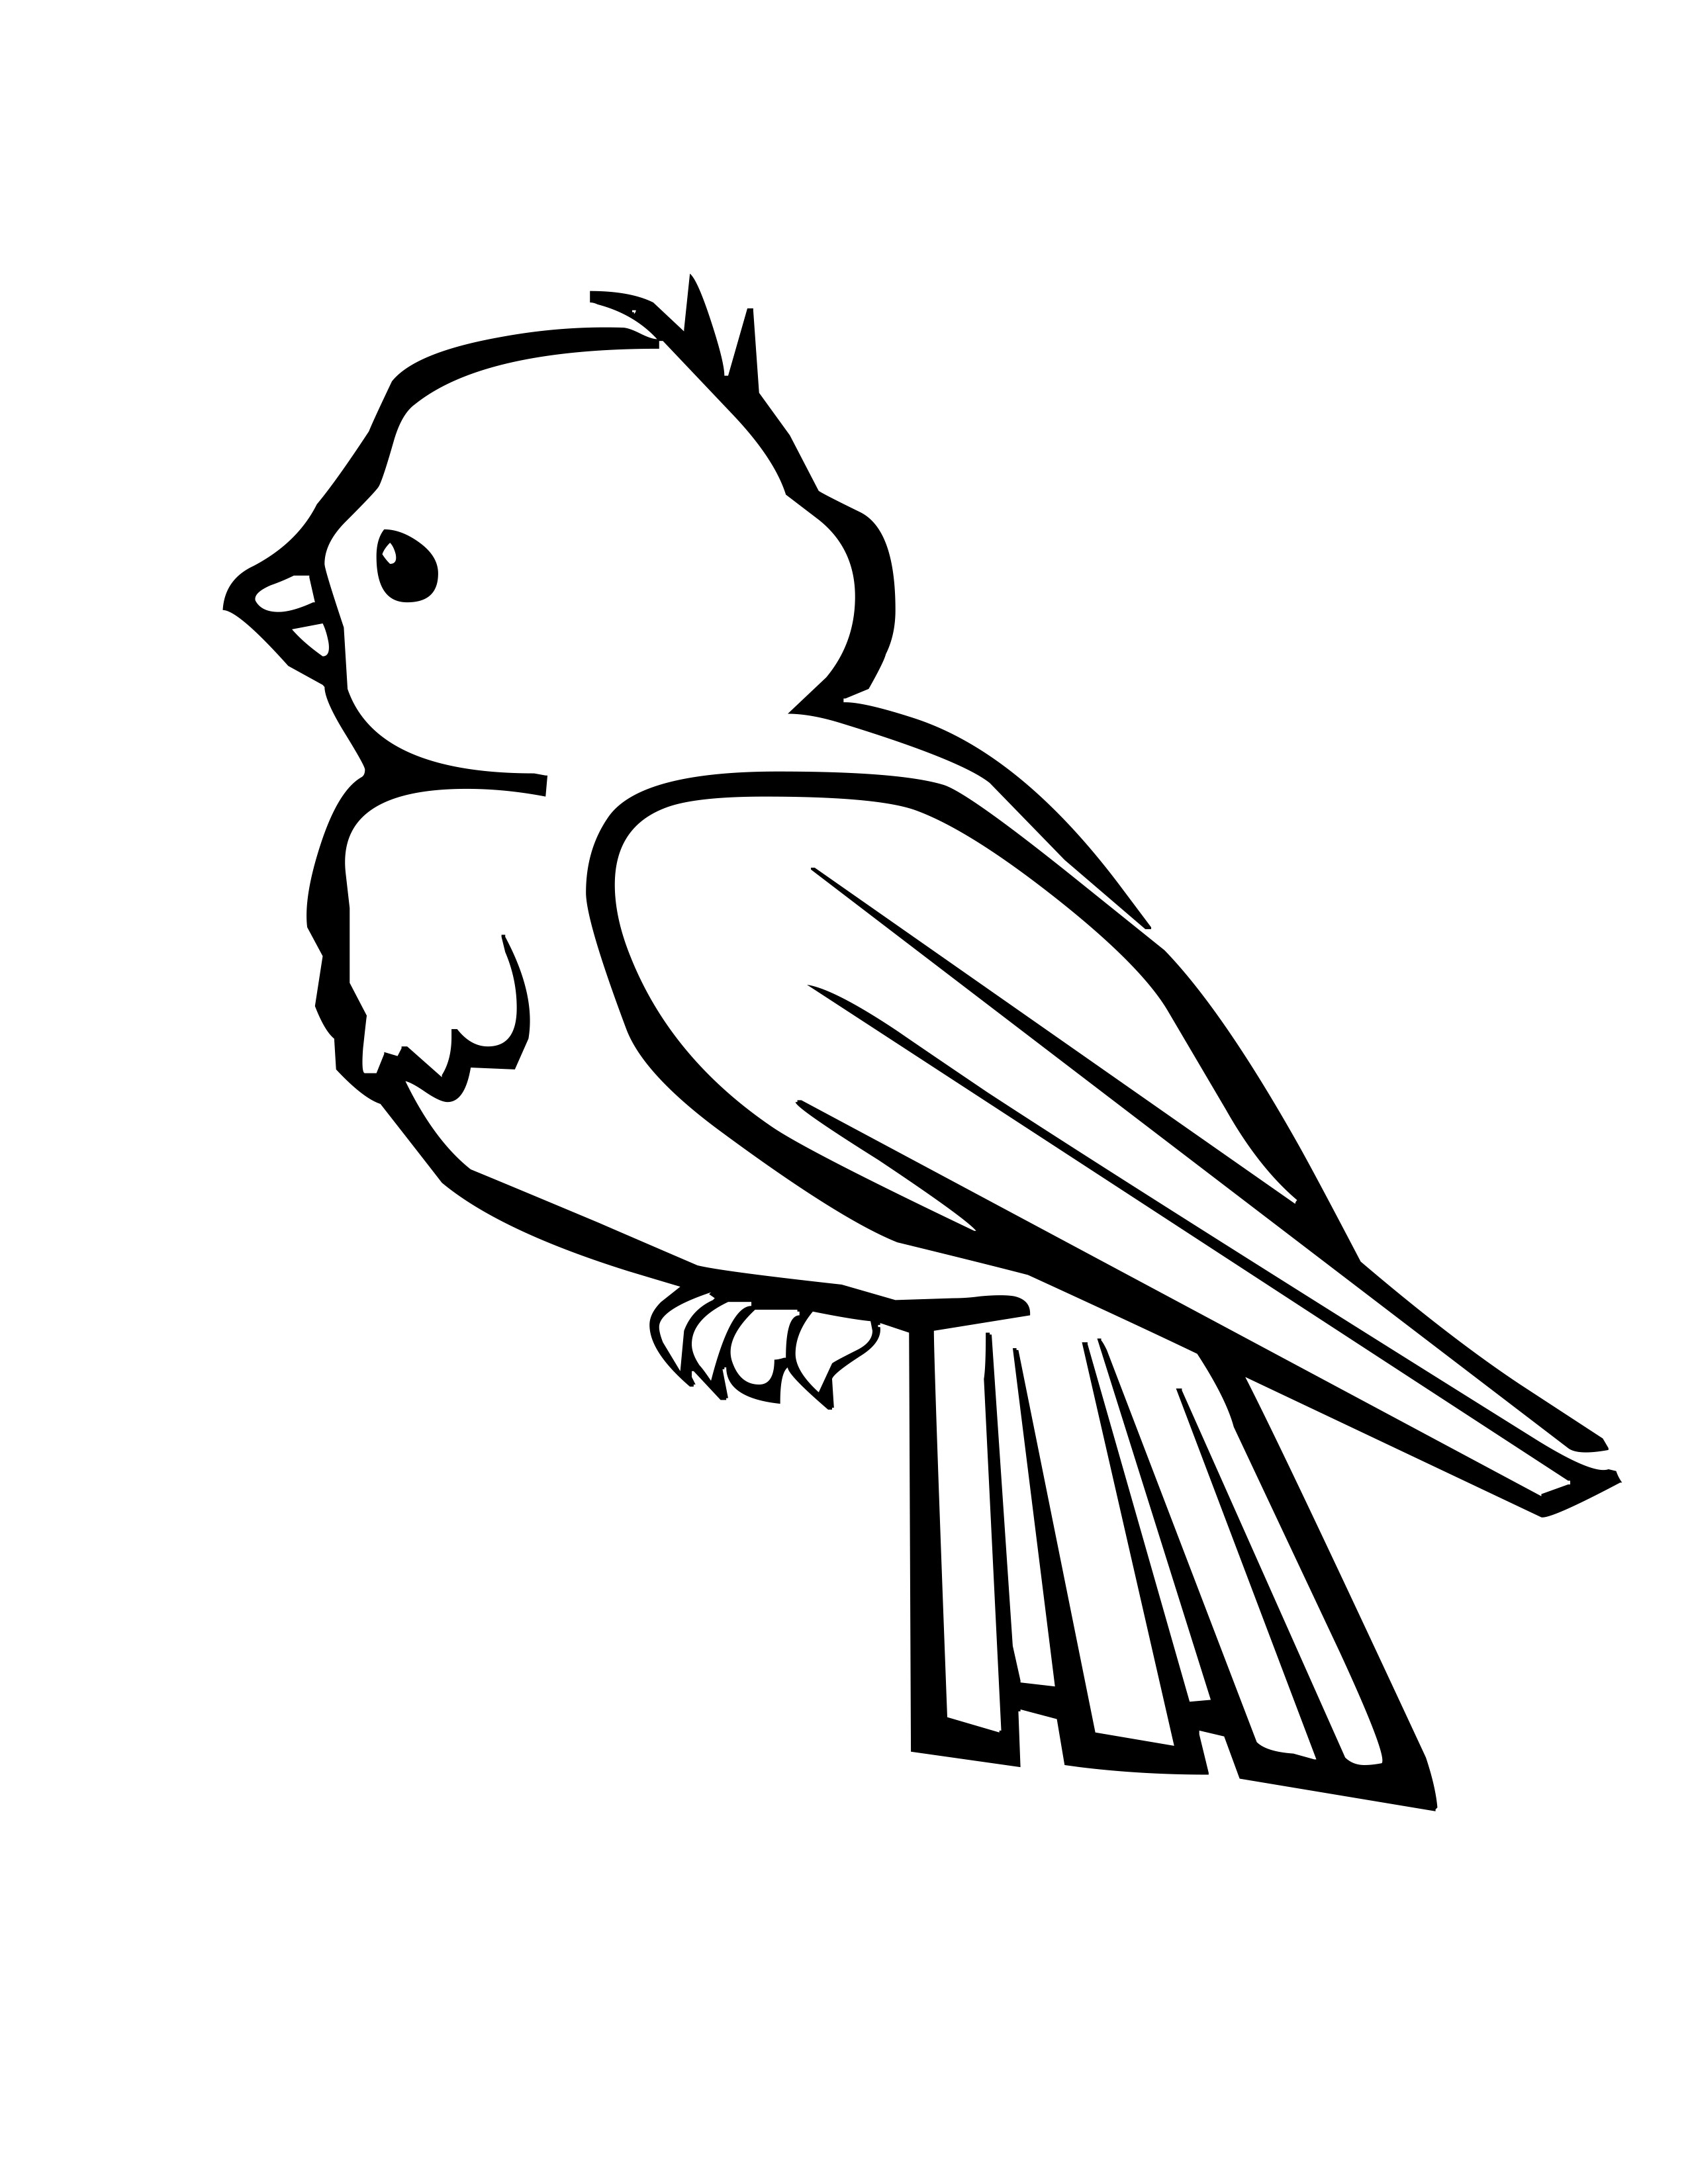 bird coloring pages kids printables archives page 2 of 4 the graphics fairy pages coloring bird